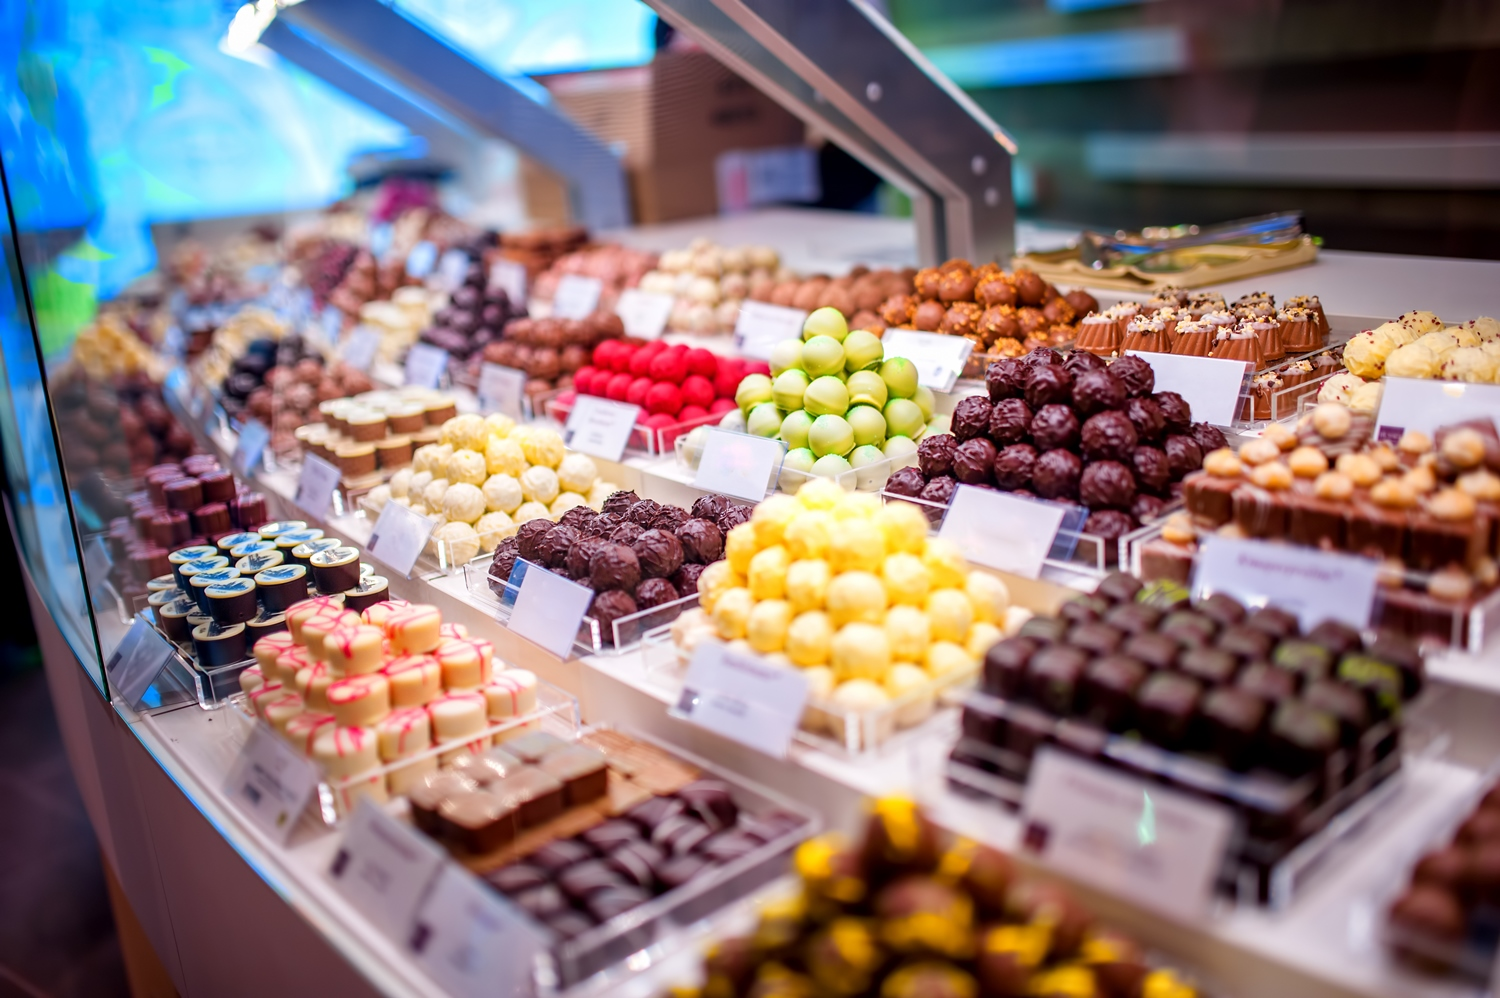 chocolate truffes, candies and sweets store on showcase in facto